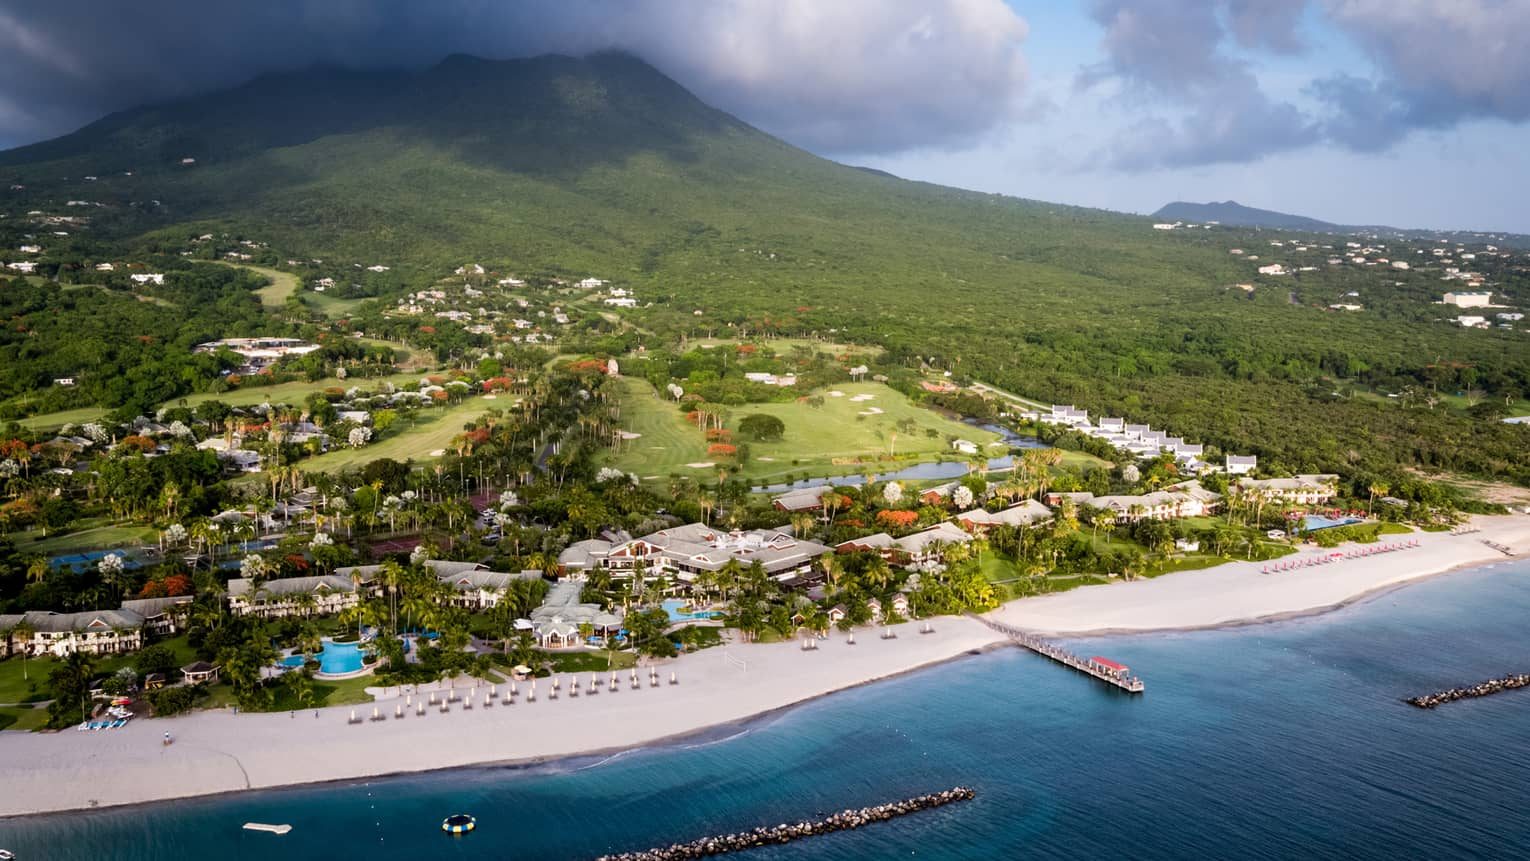 Aerial view of Four Seasons Resort Nevis beach, buildings, green mountain